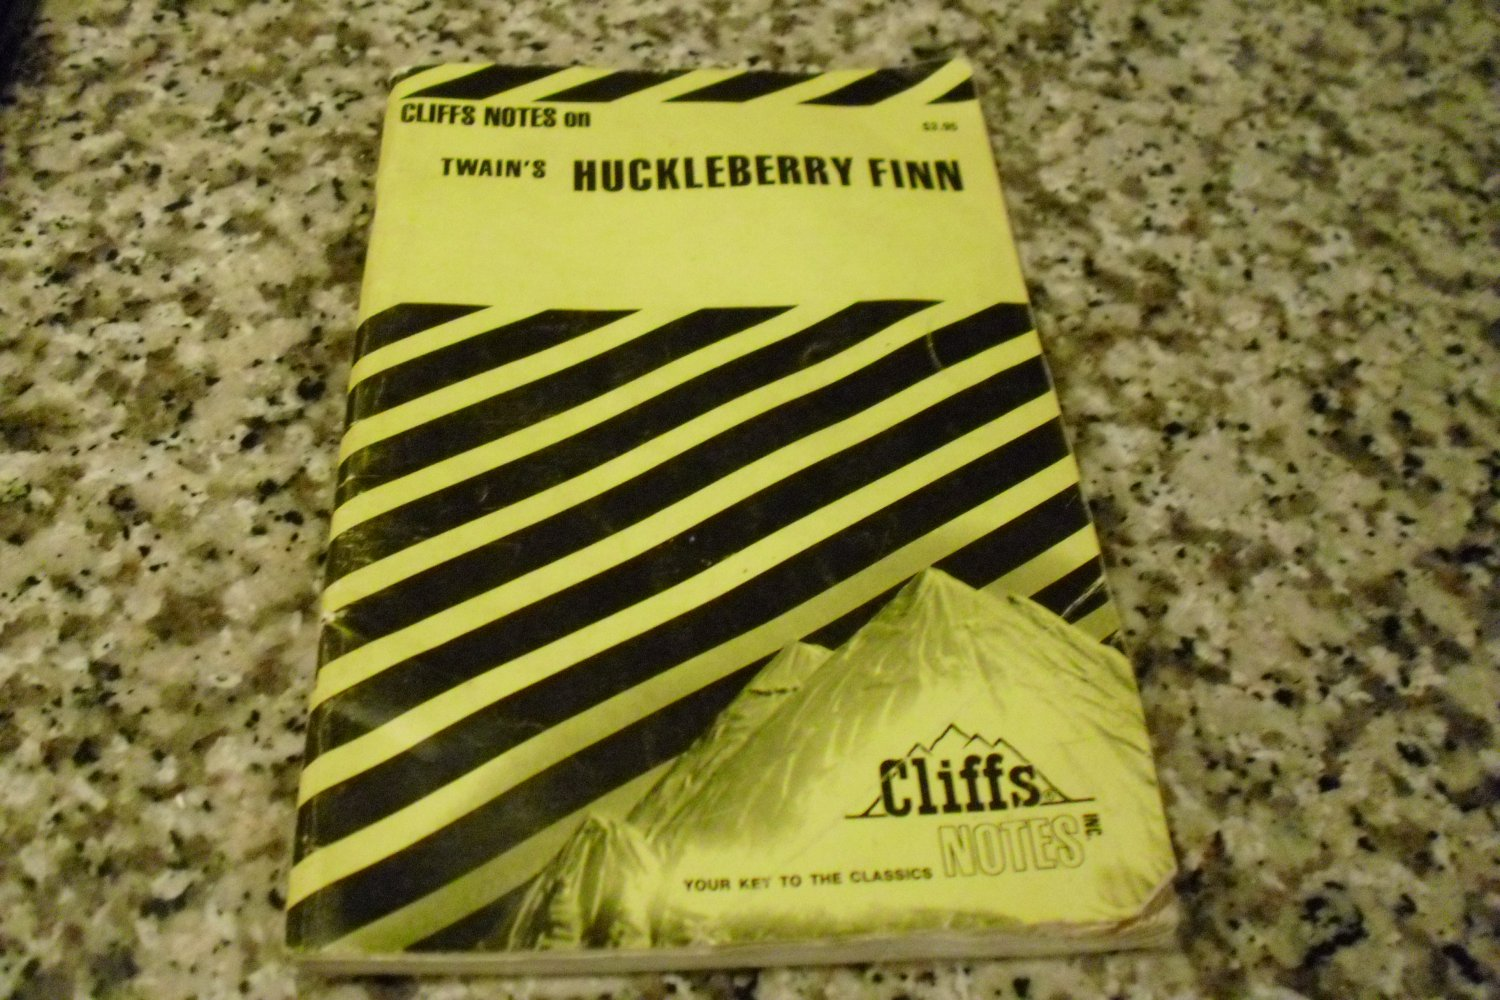 cliff notes on huckleberry finn essay This is our monkeynotes downloadable and printable book summary/book notes/synopsis for the adventures of huckleberry finn essay ideas, bibliography cliff.